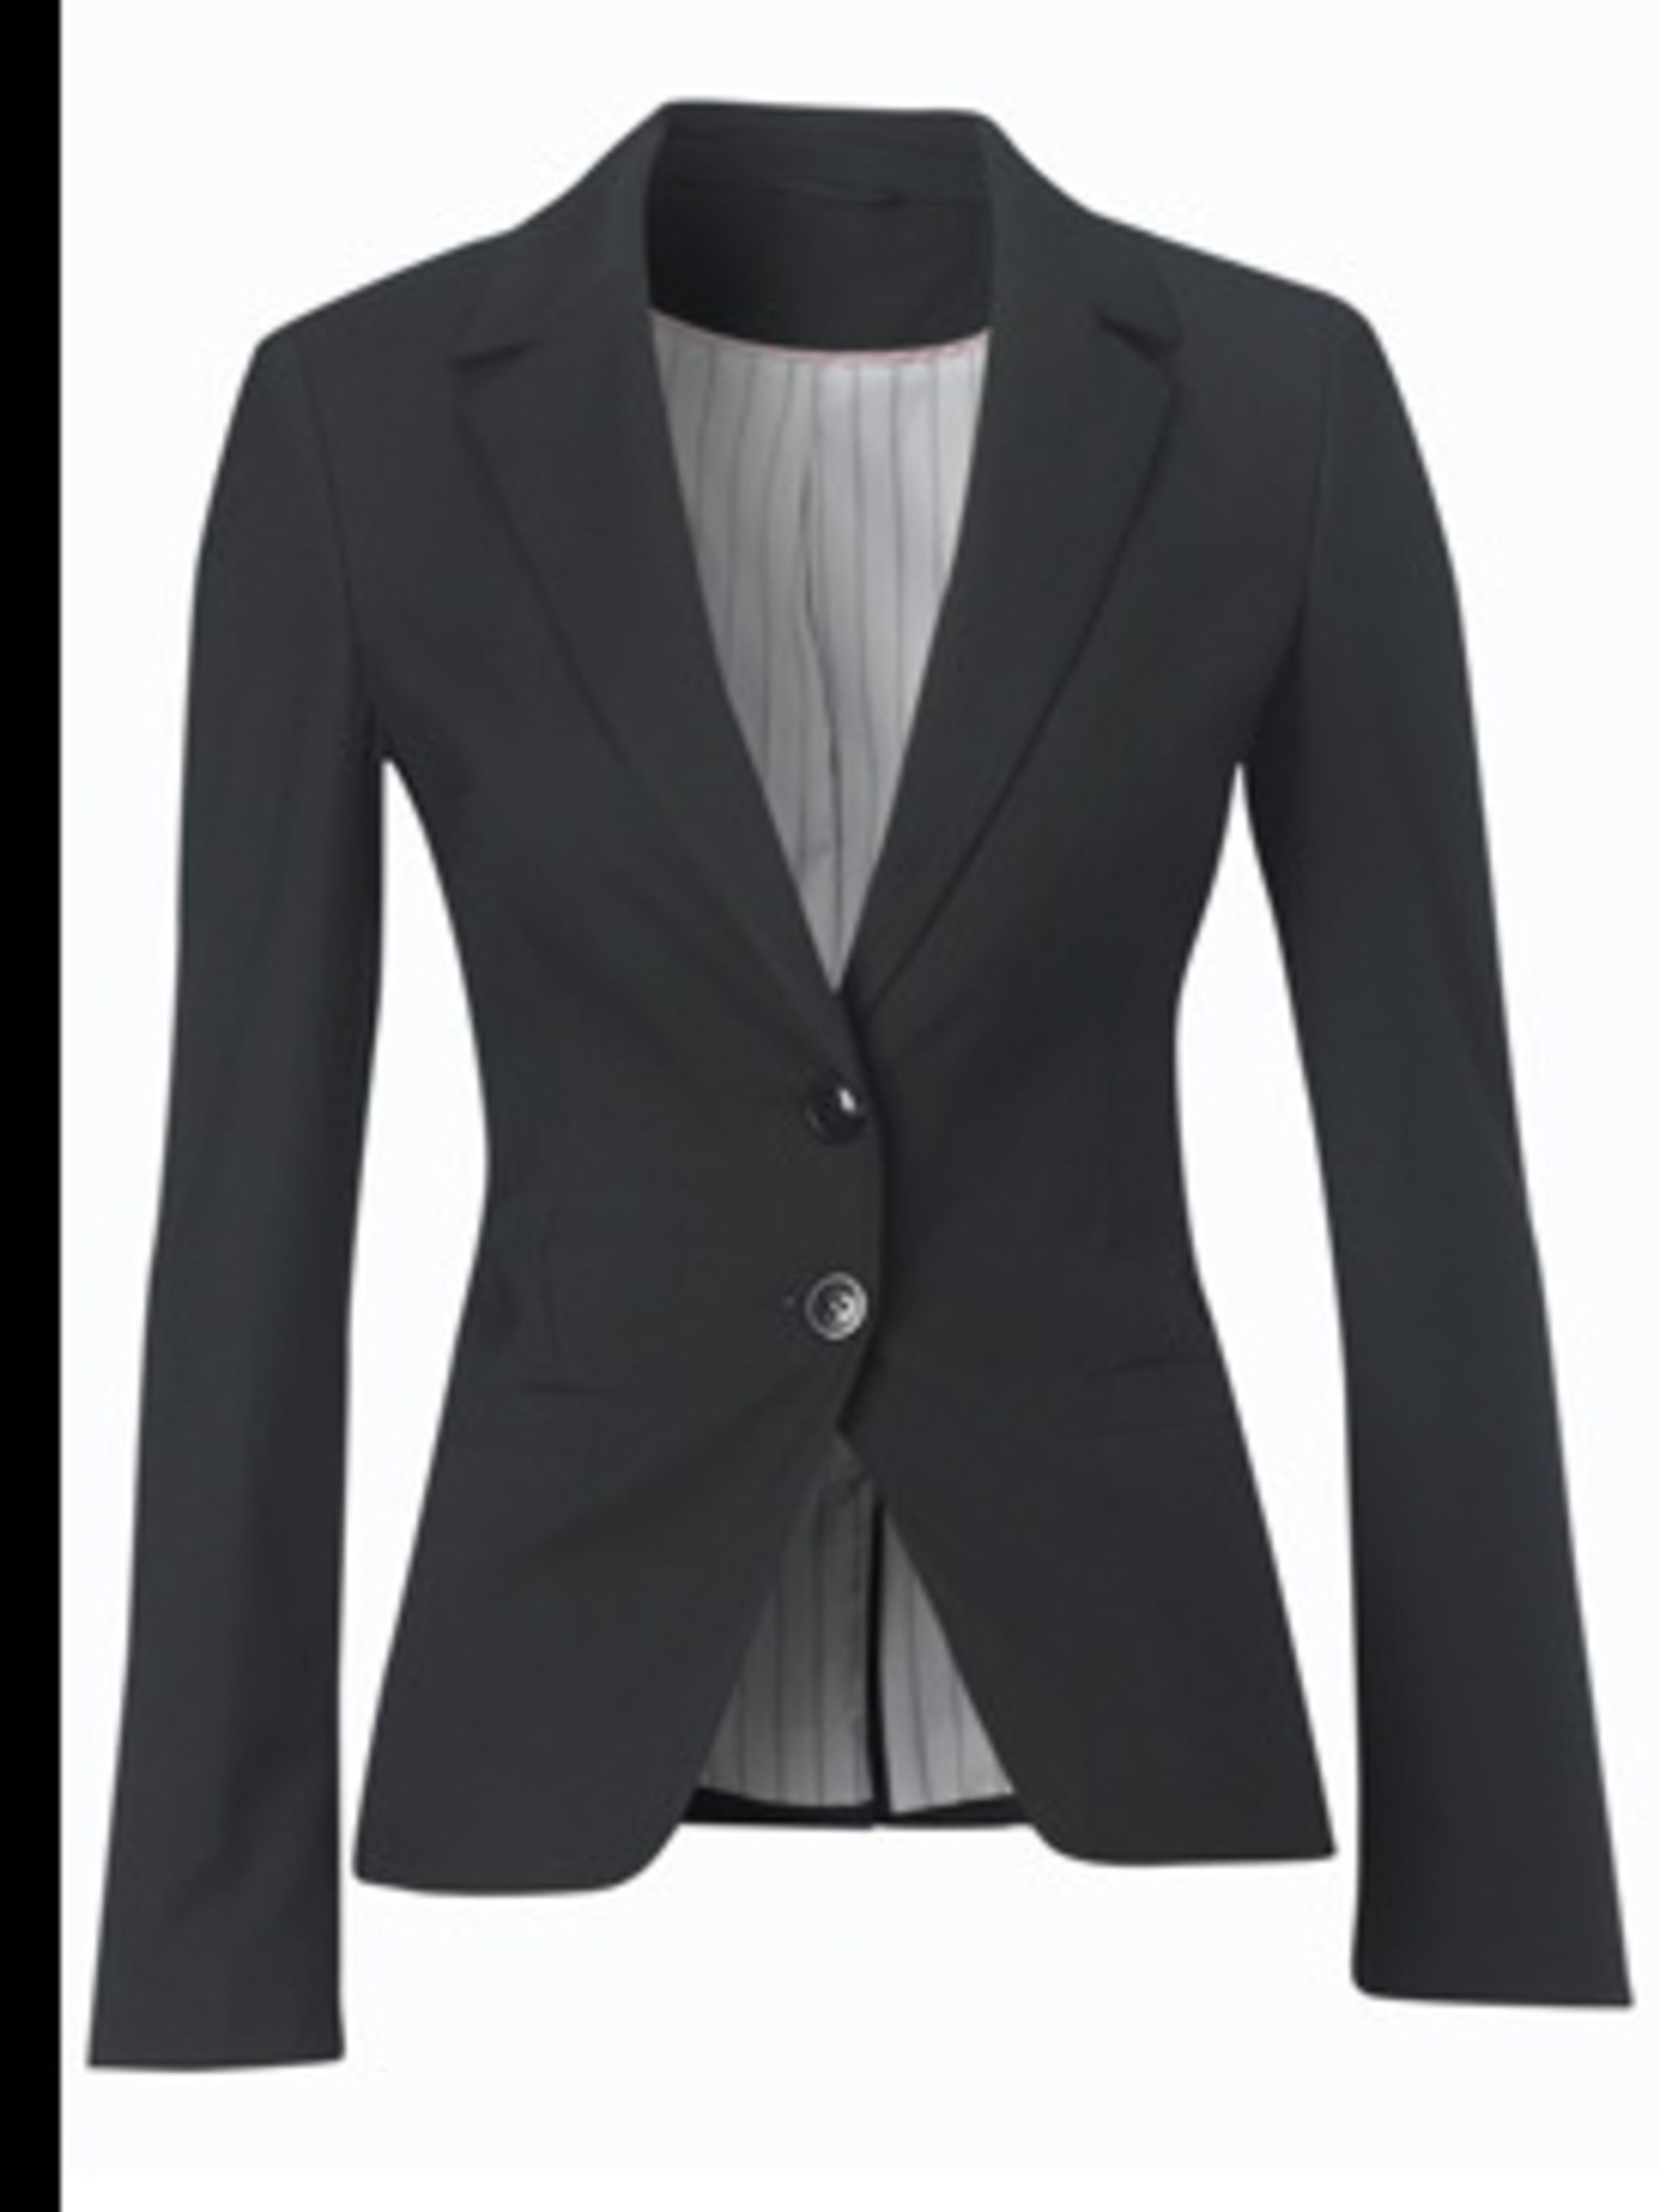 <p>Blazer, £20.00 at New Look</p>